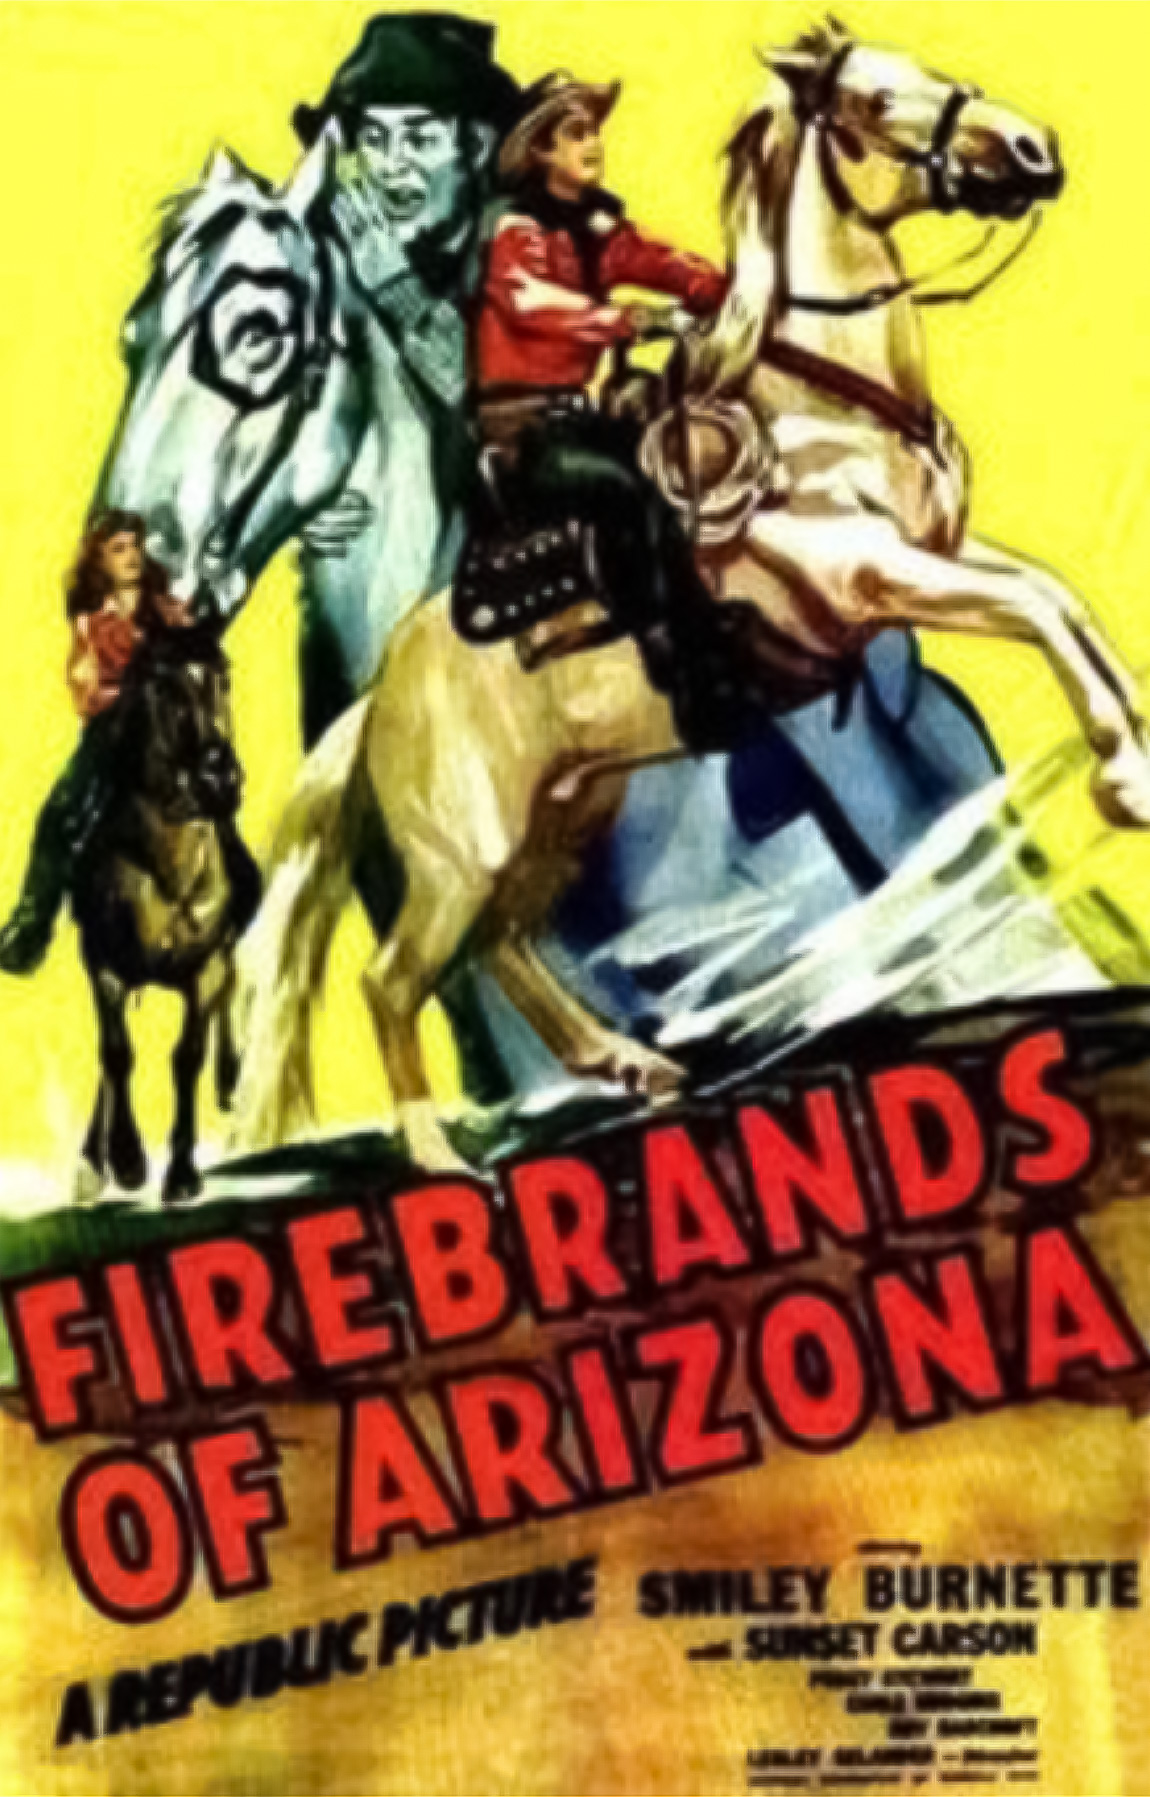 Smiley Burnette, Sunset Carson, and Peggy Stewart in Firebrands of Arizona (1944)